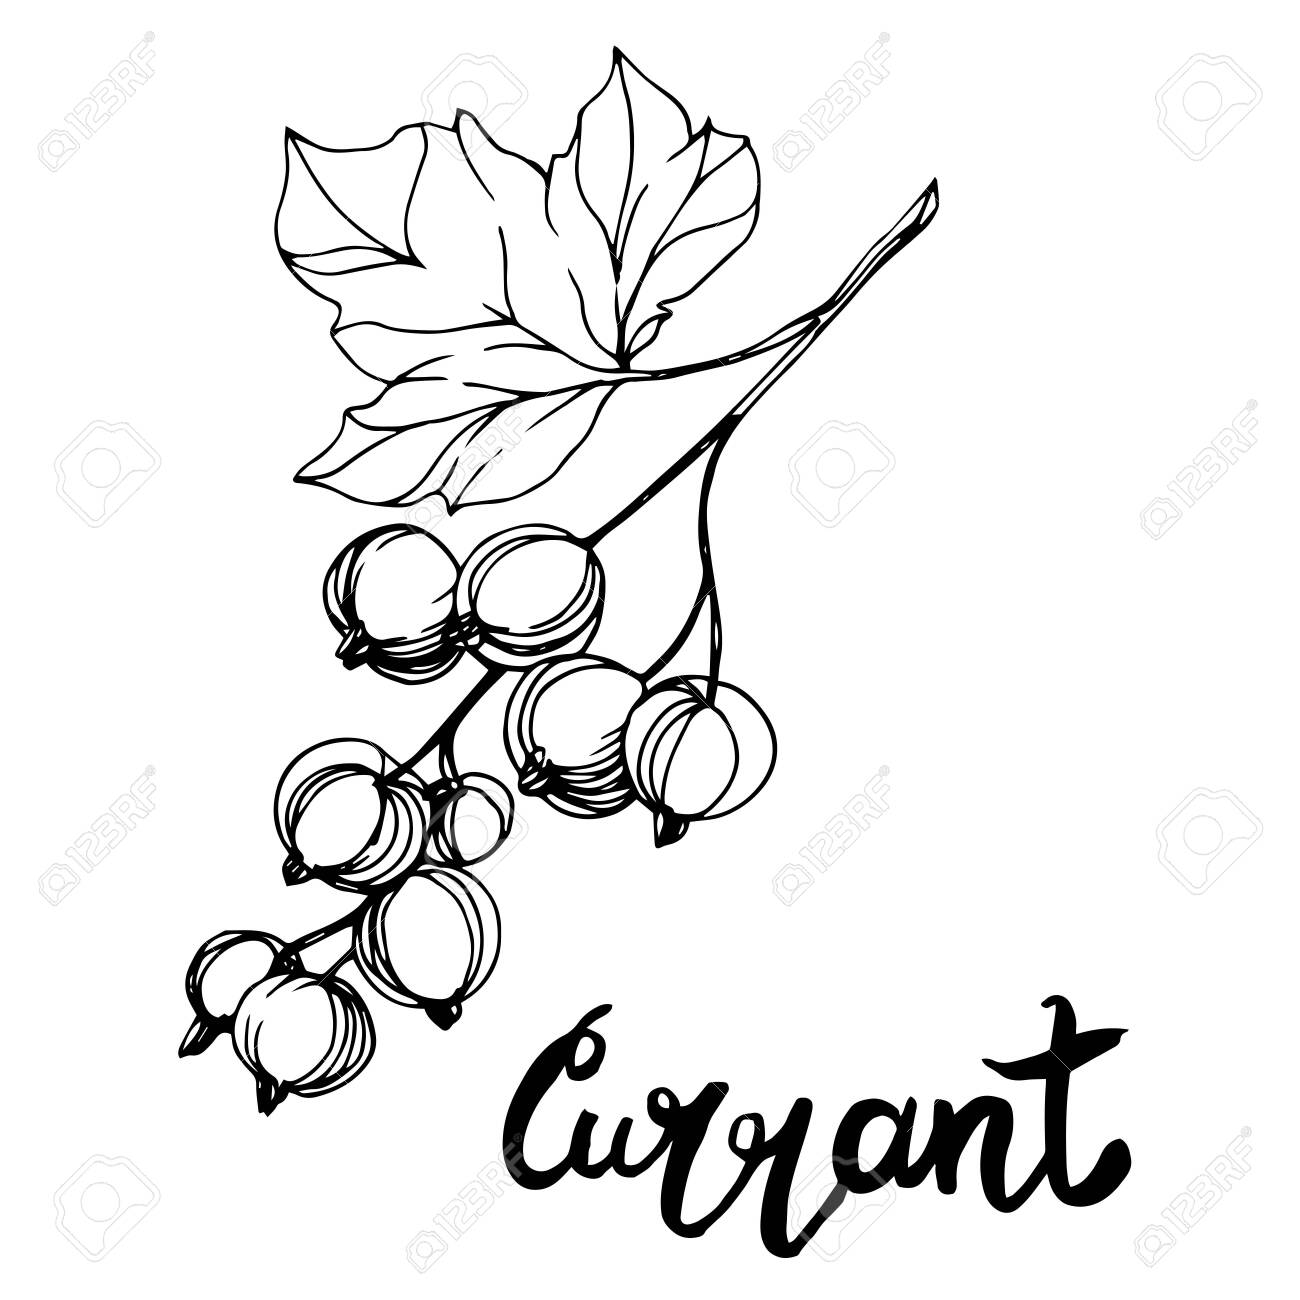 Vector Currant healthy food. Black and white engraved ink art. Isolated berry illustration element. - 134180896